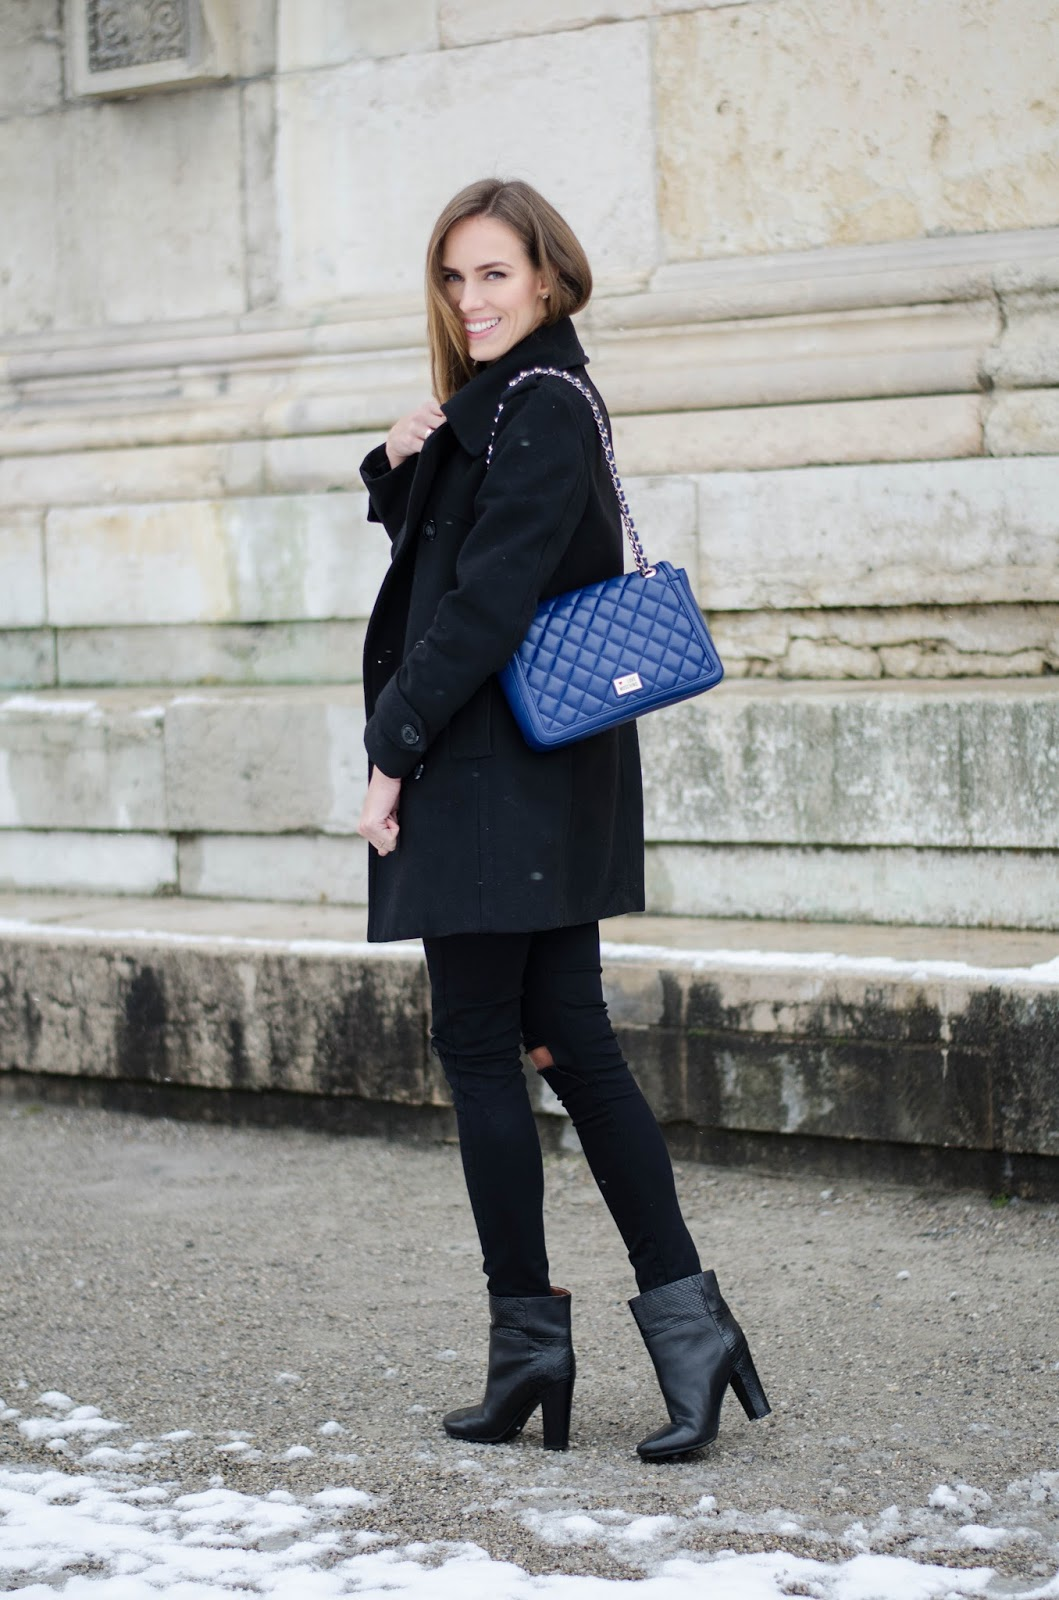 kristjaana mere peacoat black jeans ankle boots blue moschino bag